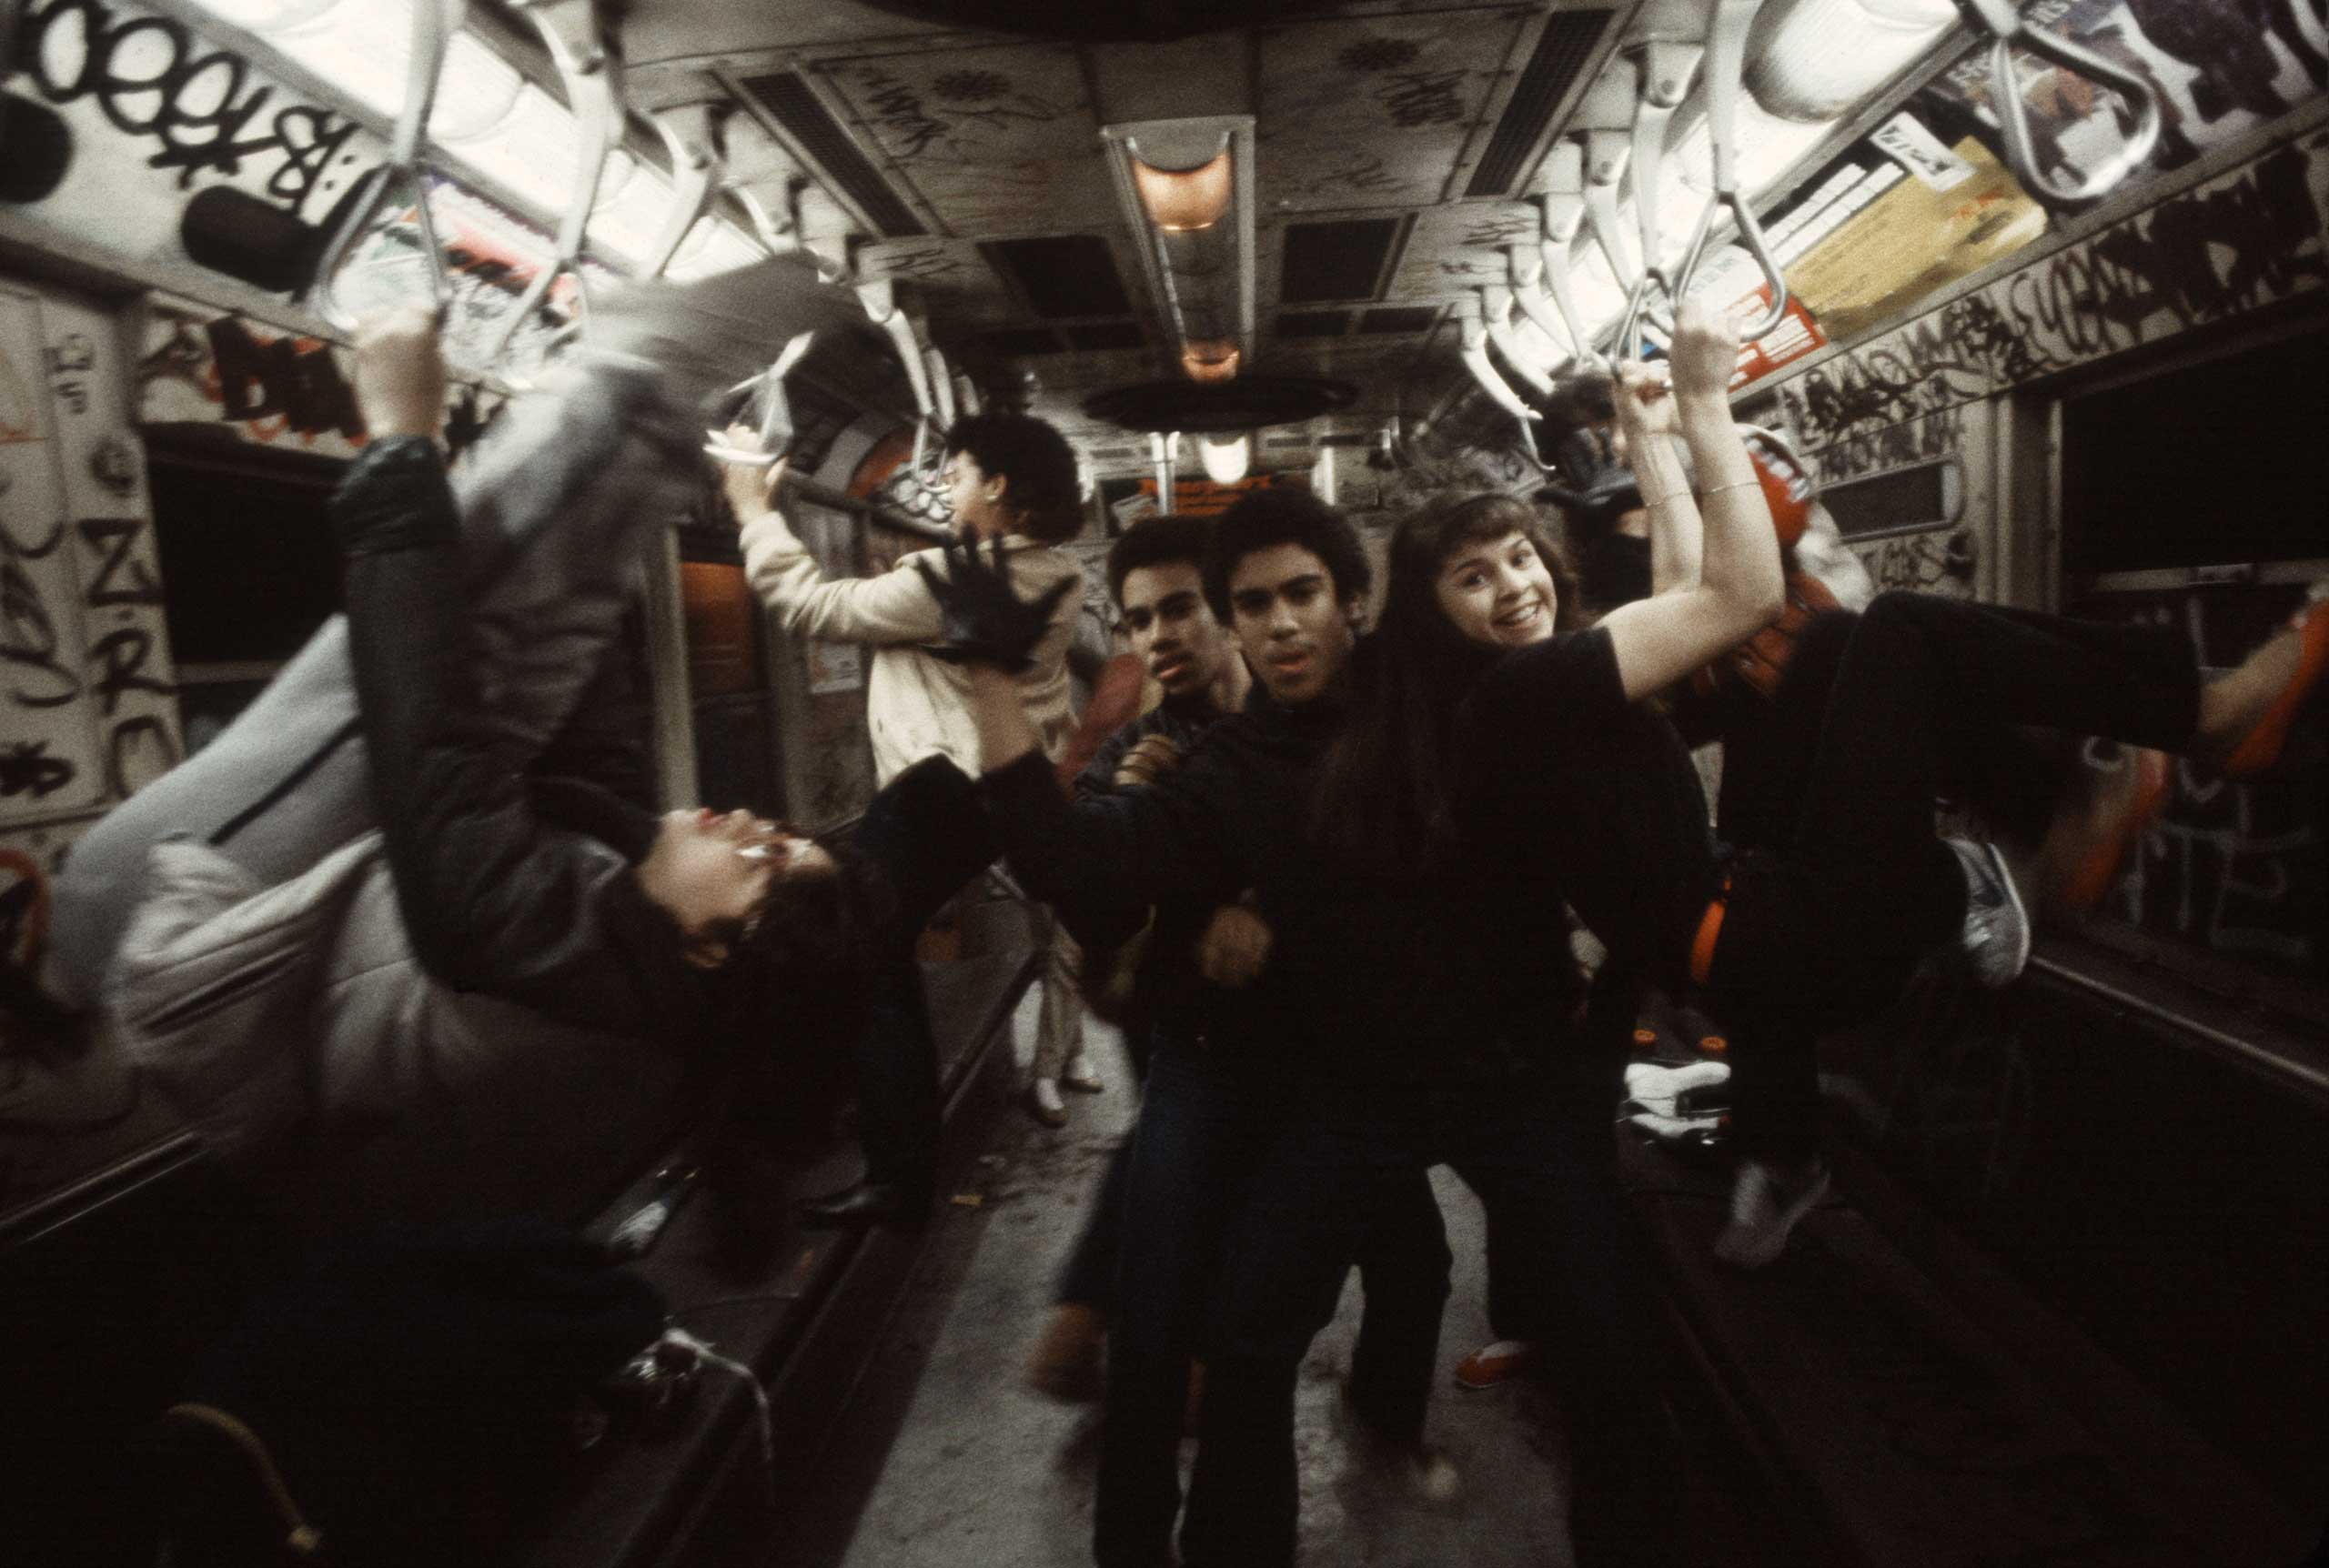 A group of teens pose on the 6 train in the South Bronx, 1981.